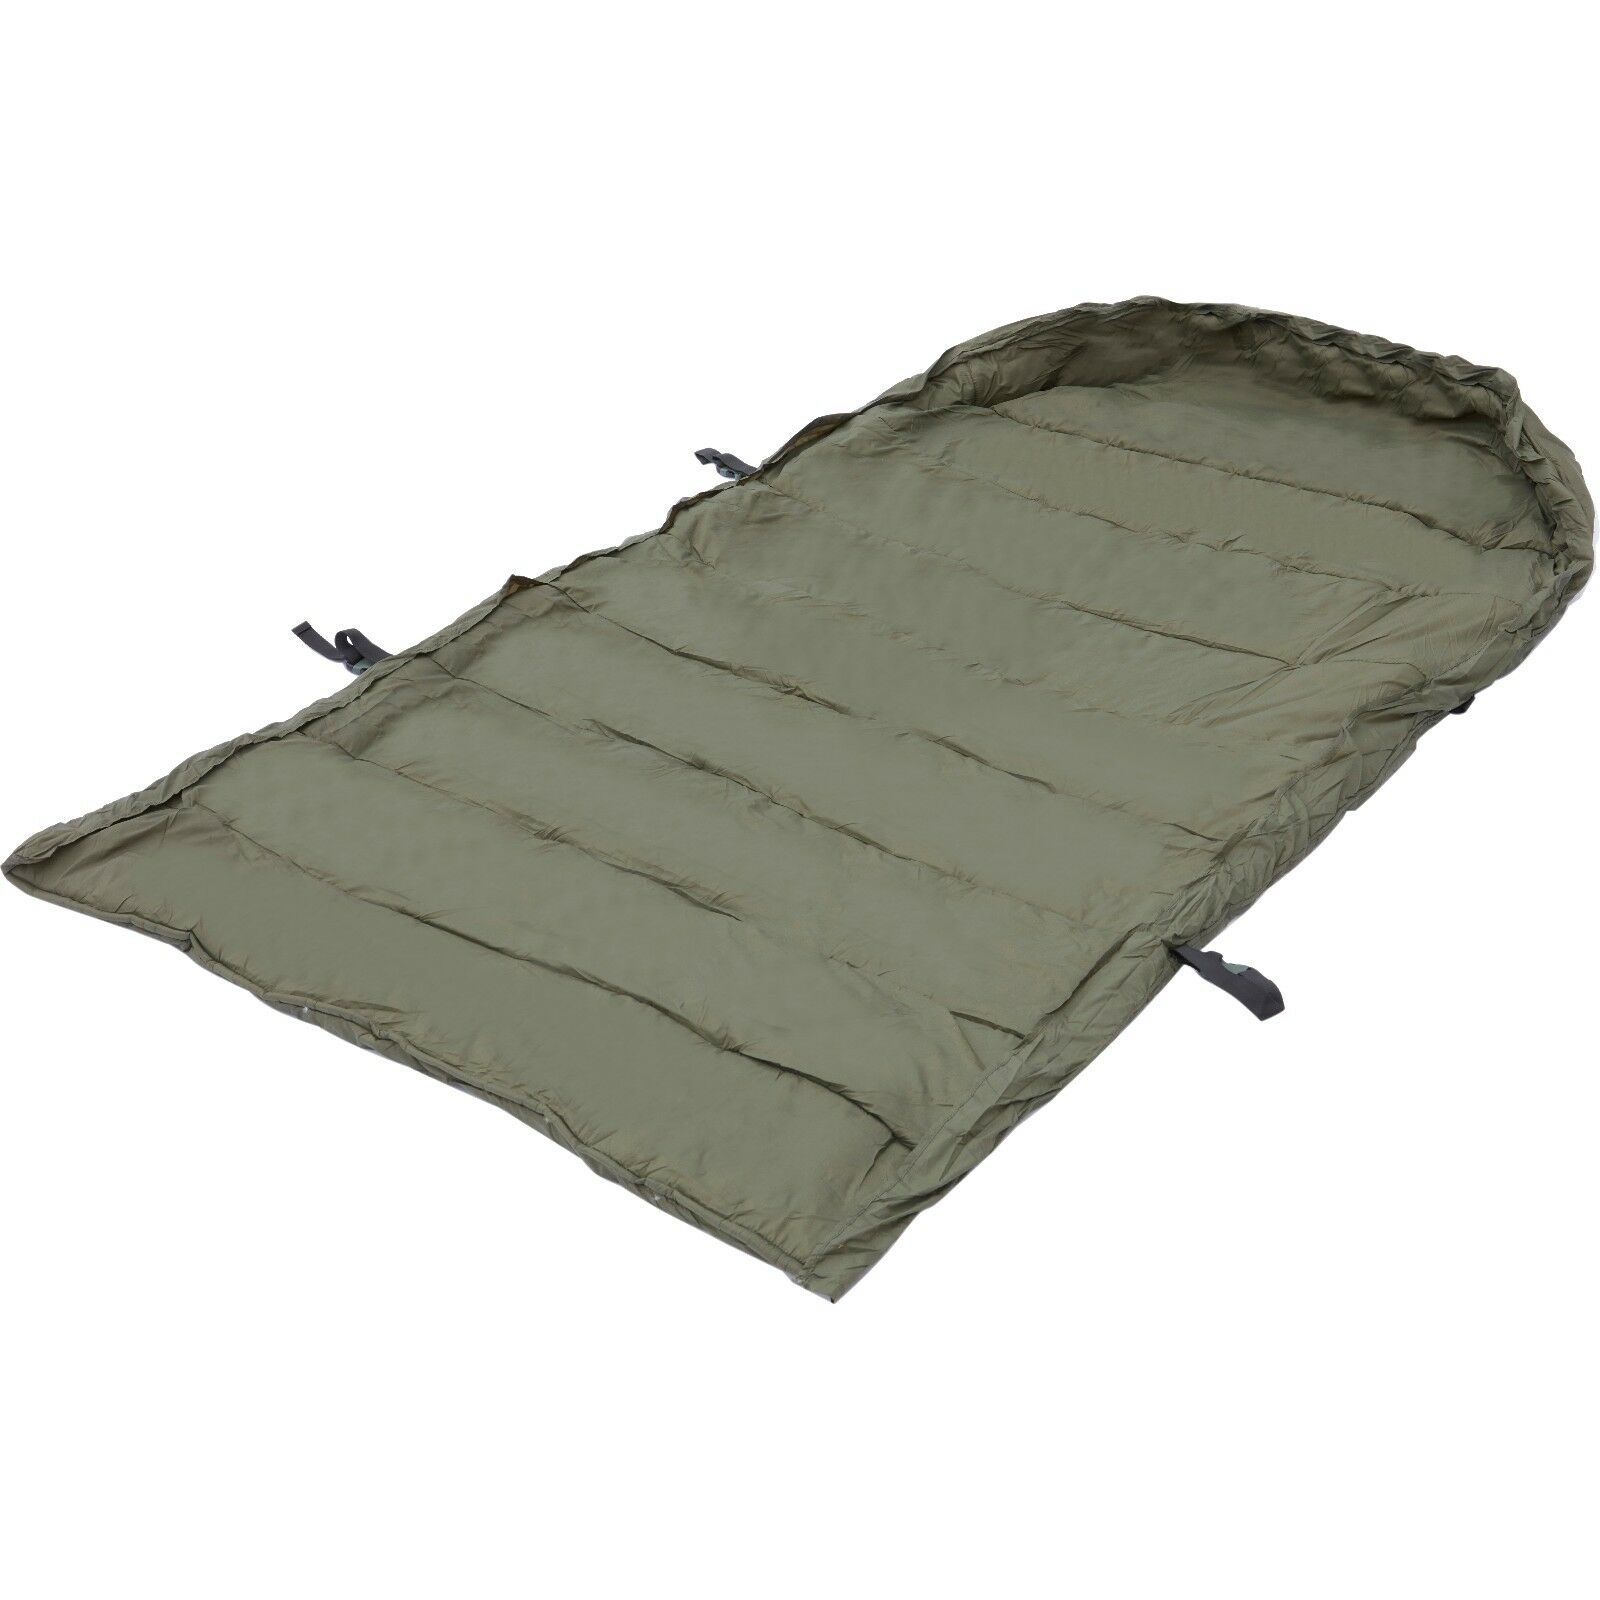 Carp Pro NEW Sleeping Bag Cover Standard Lightweight Fits Any Bed Size